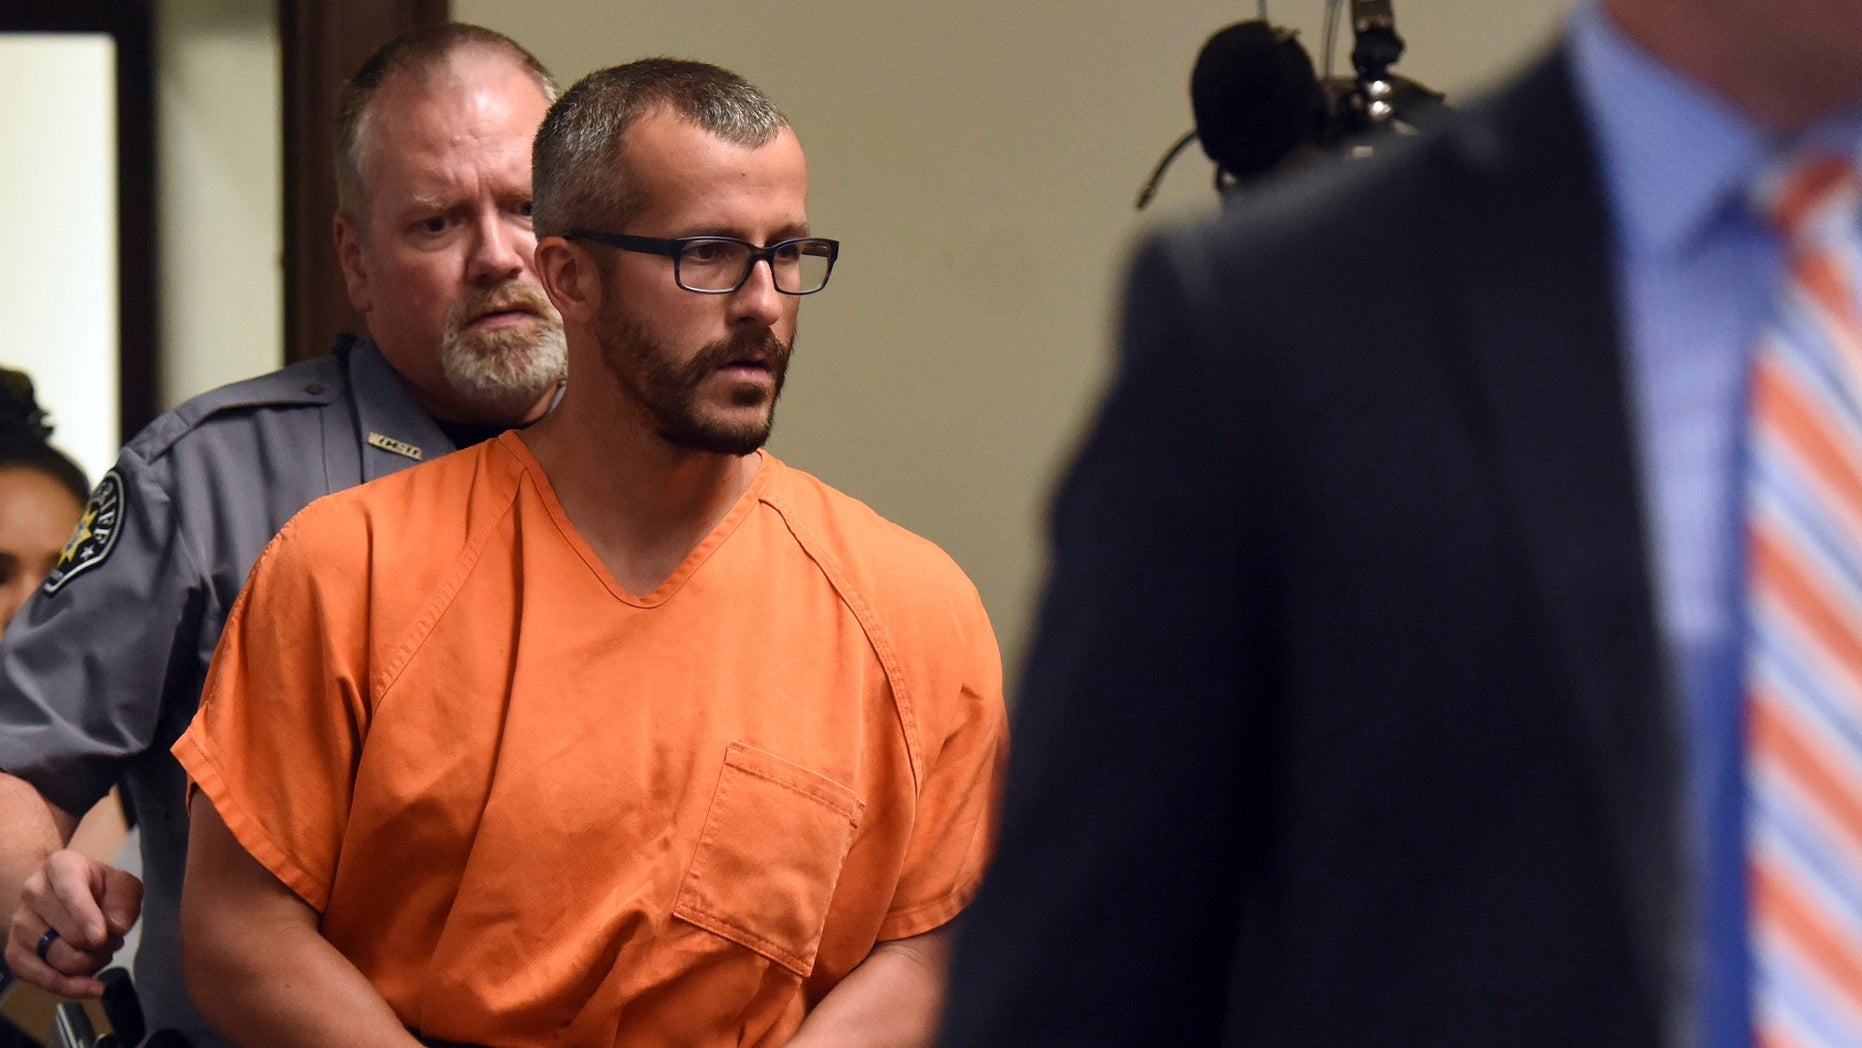 Chris Watts' mistress breaks her silence ahead of sentencing